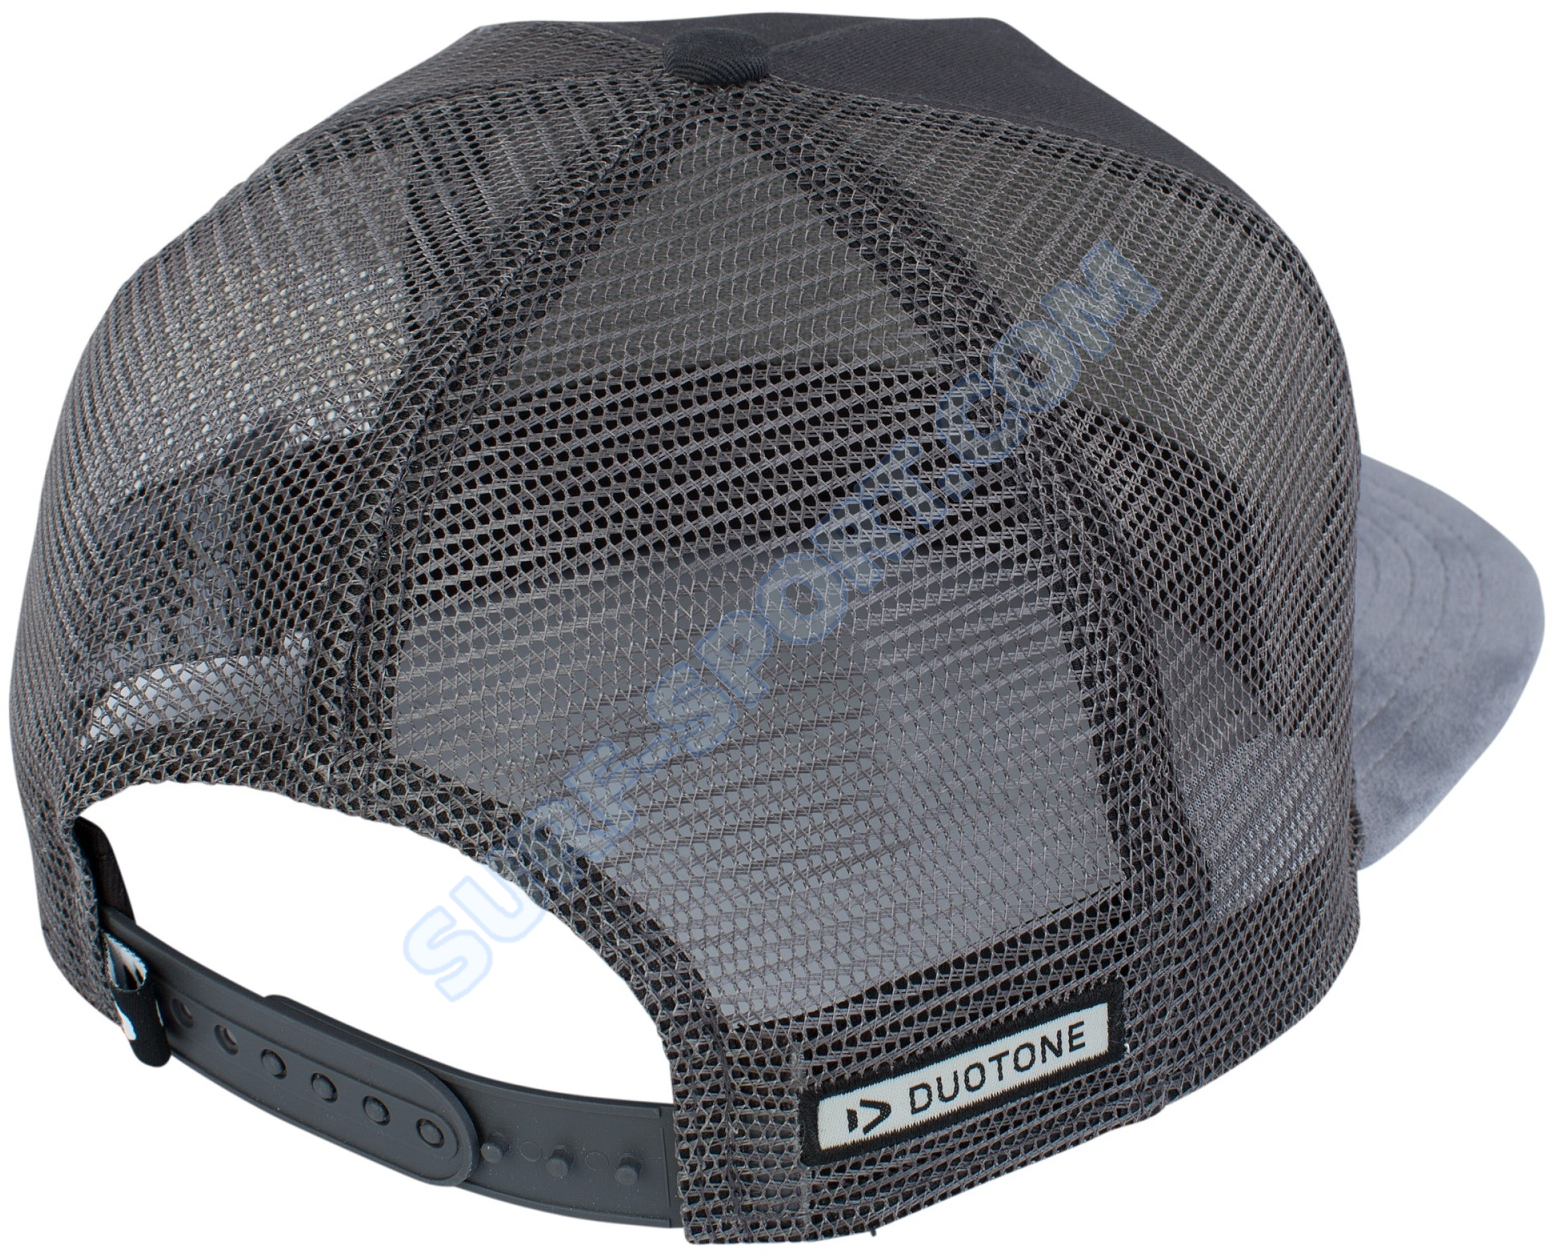 44200-5916_Dutone-Ne Era Cap 9Fifty-Aframe-Circle-dark gray-back.png